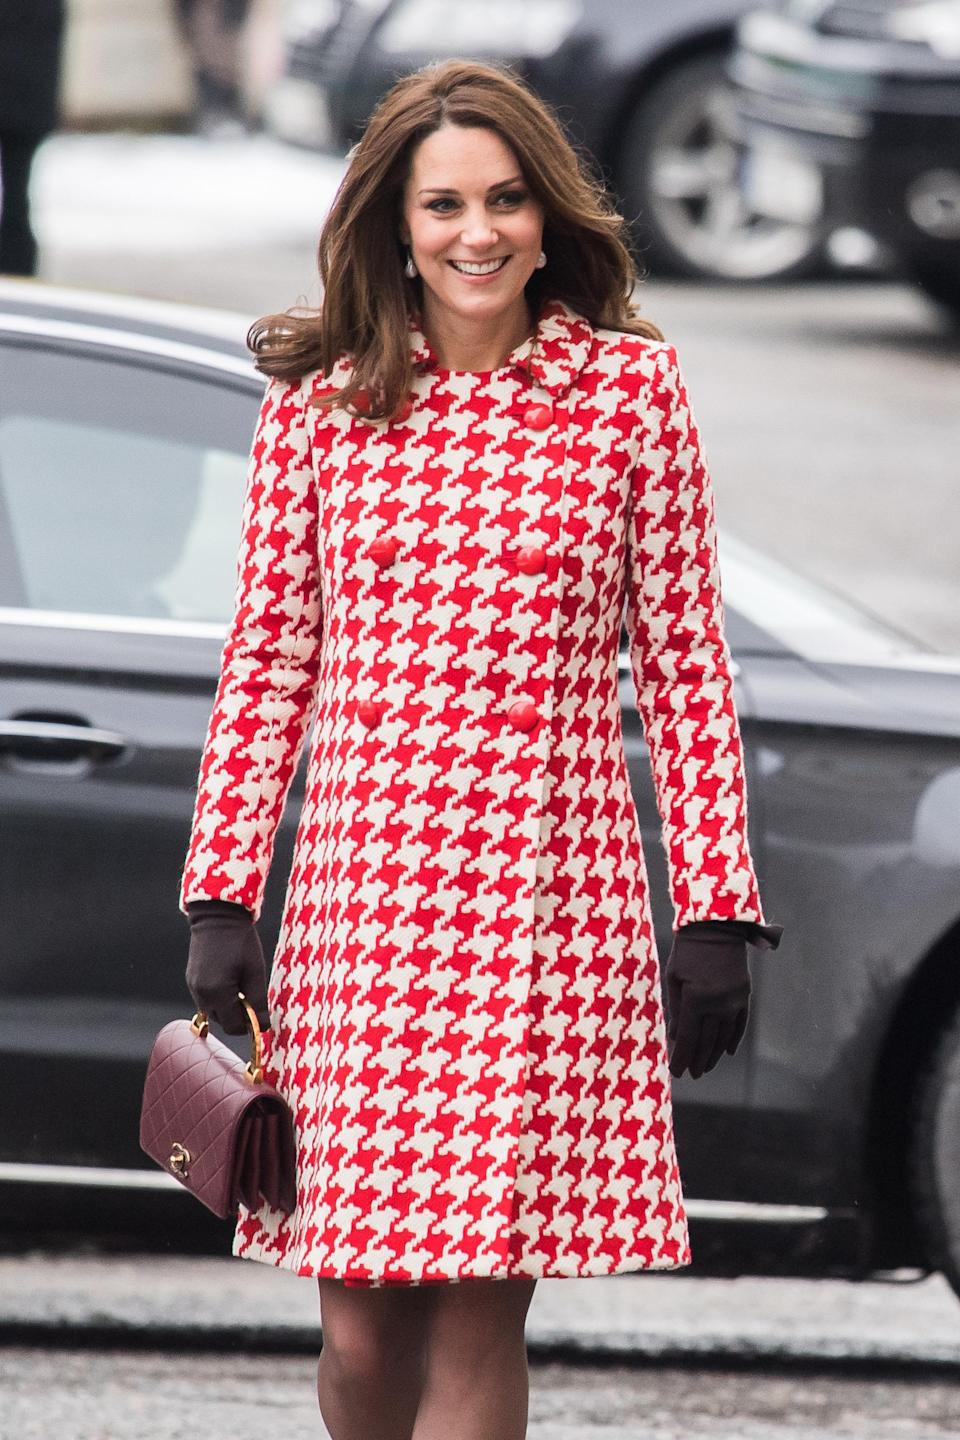 <p><strong>The occassion:</strong> A visit to Matteusskolan School on day two of the Duke and Duchess's royal visit to Sweden and Norway.<br><strong>The look:</strong> A '60s-style red-and-white houndstooth coat by Catherine Walker, semi-opaque tights, burgundy block heels by Tod's and a matching burgundy Chanel Nouvelle Flap Bag from the brand's autumn/winter 15 collection.<br>[Photo: Getty] </p>